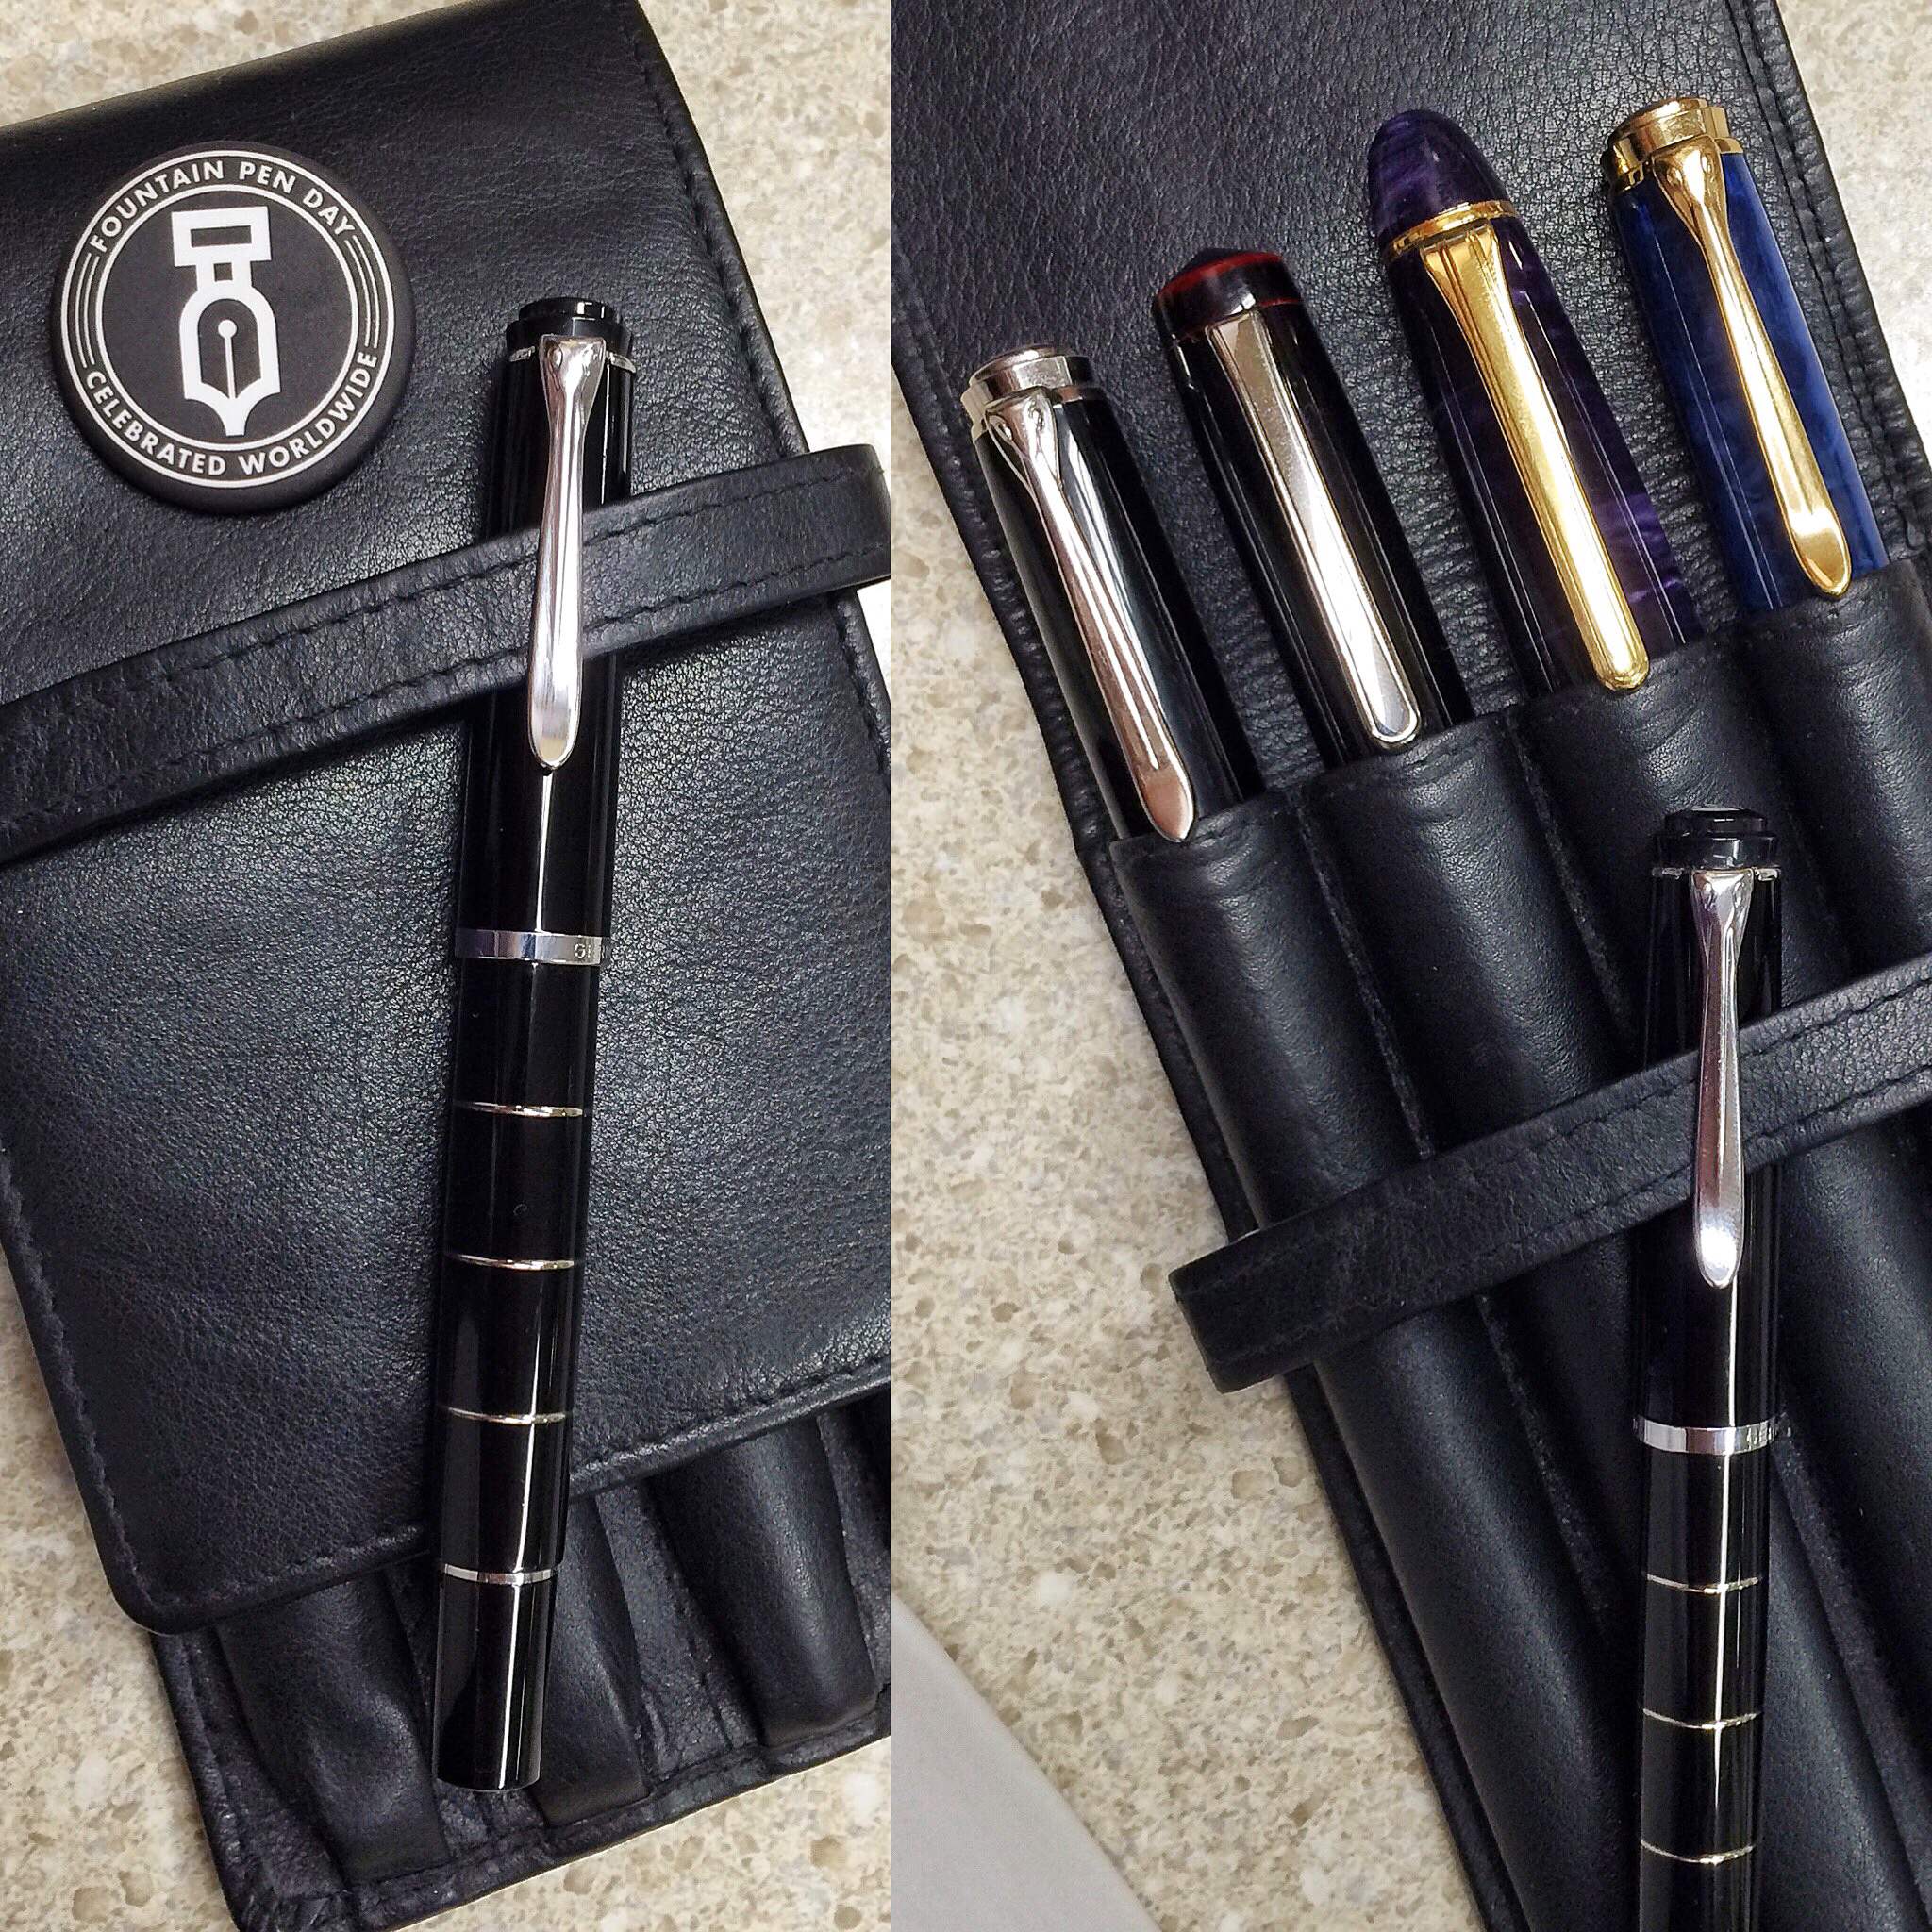 Franz's 4 pen leather case. It can carry 5 pens as well.